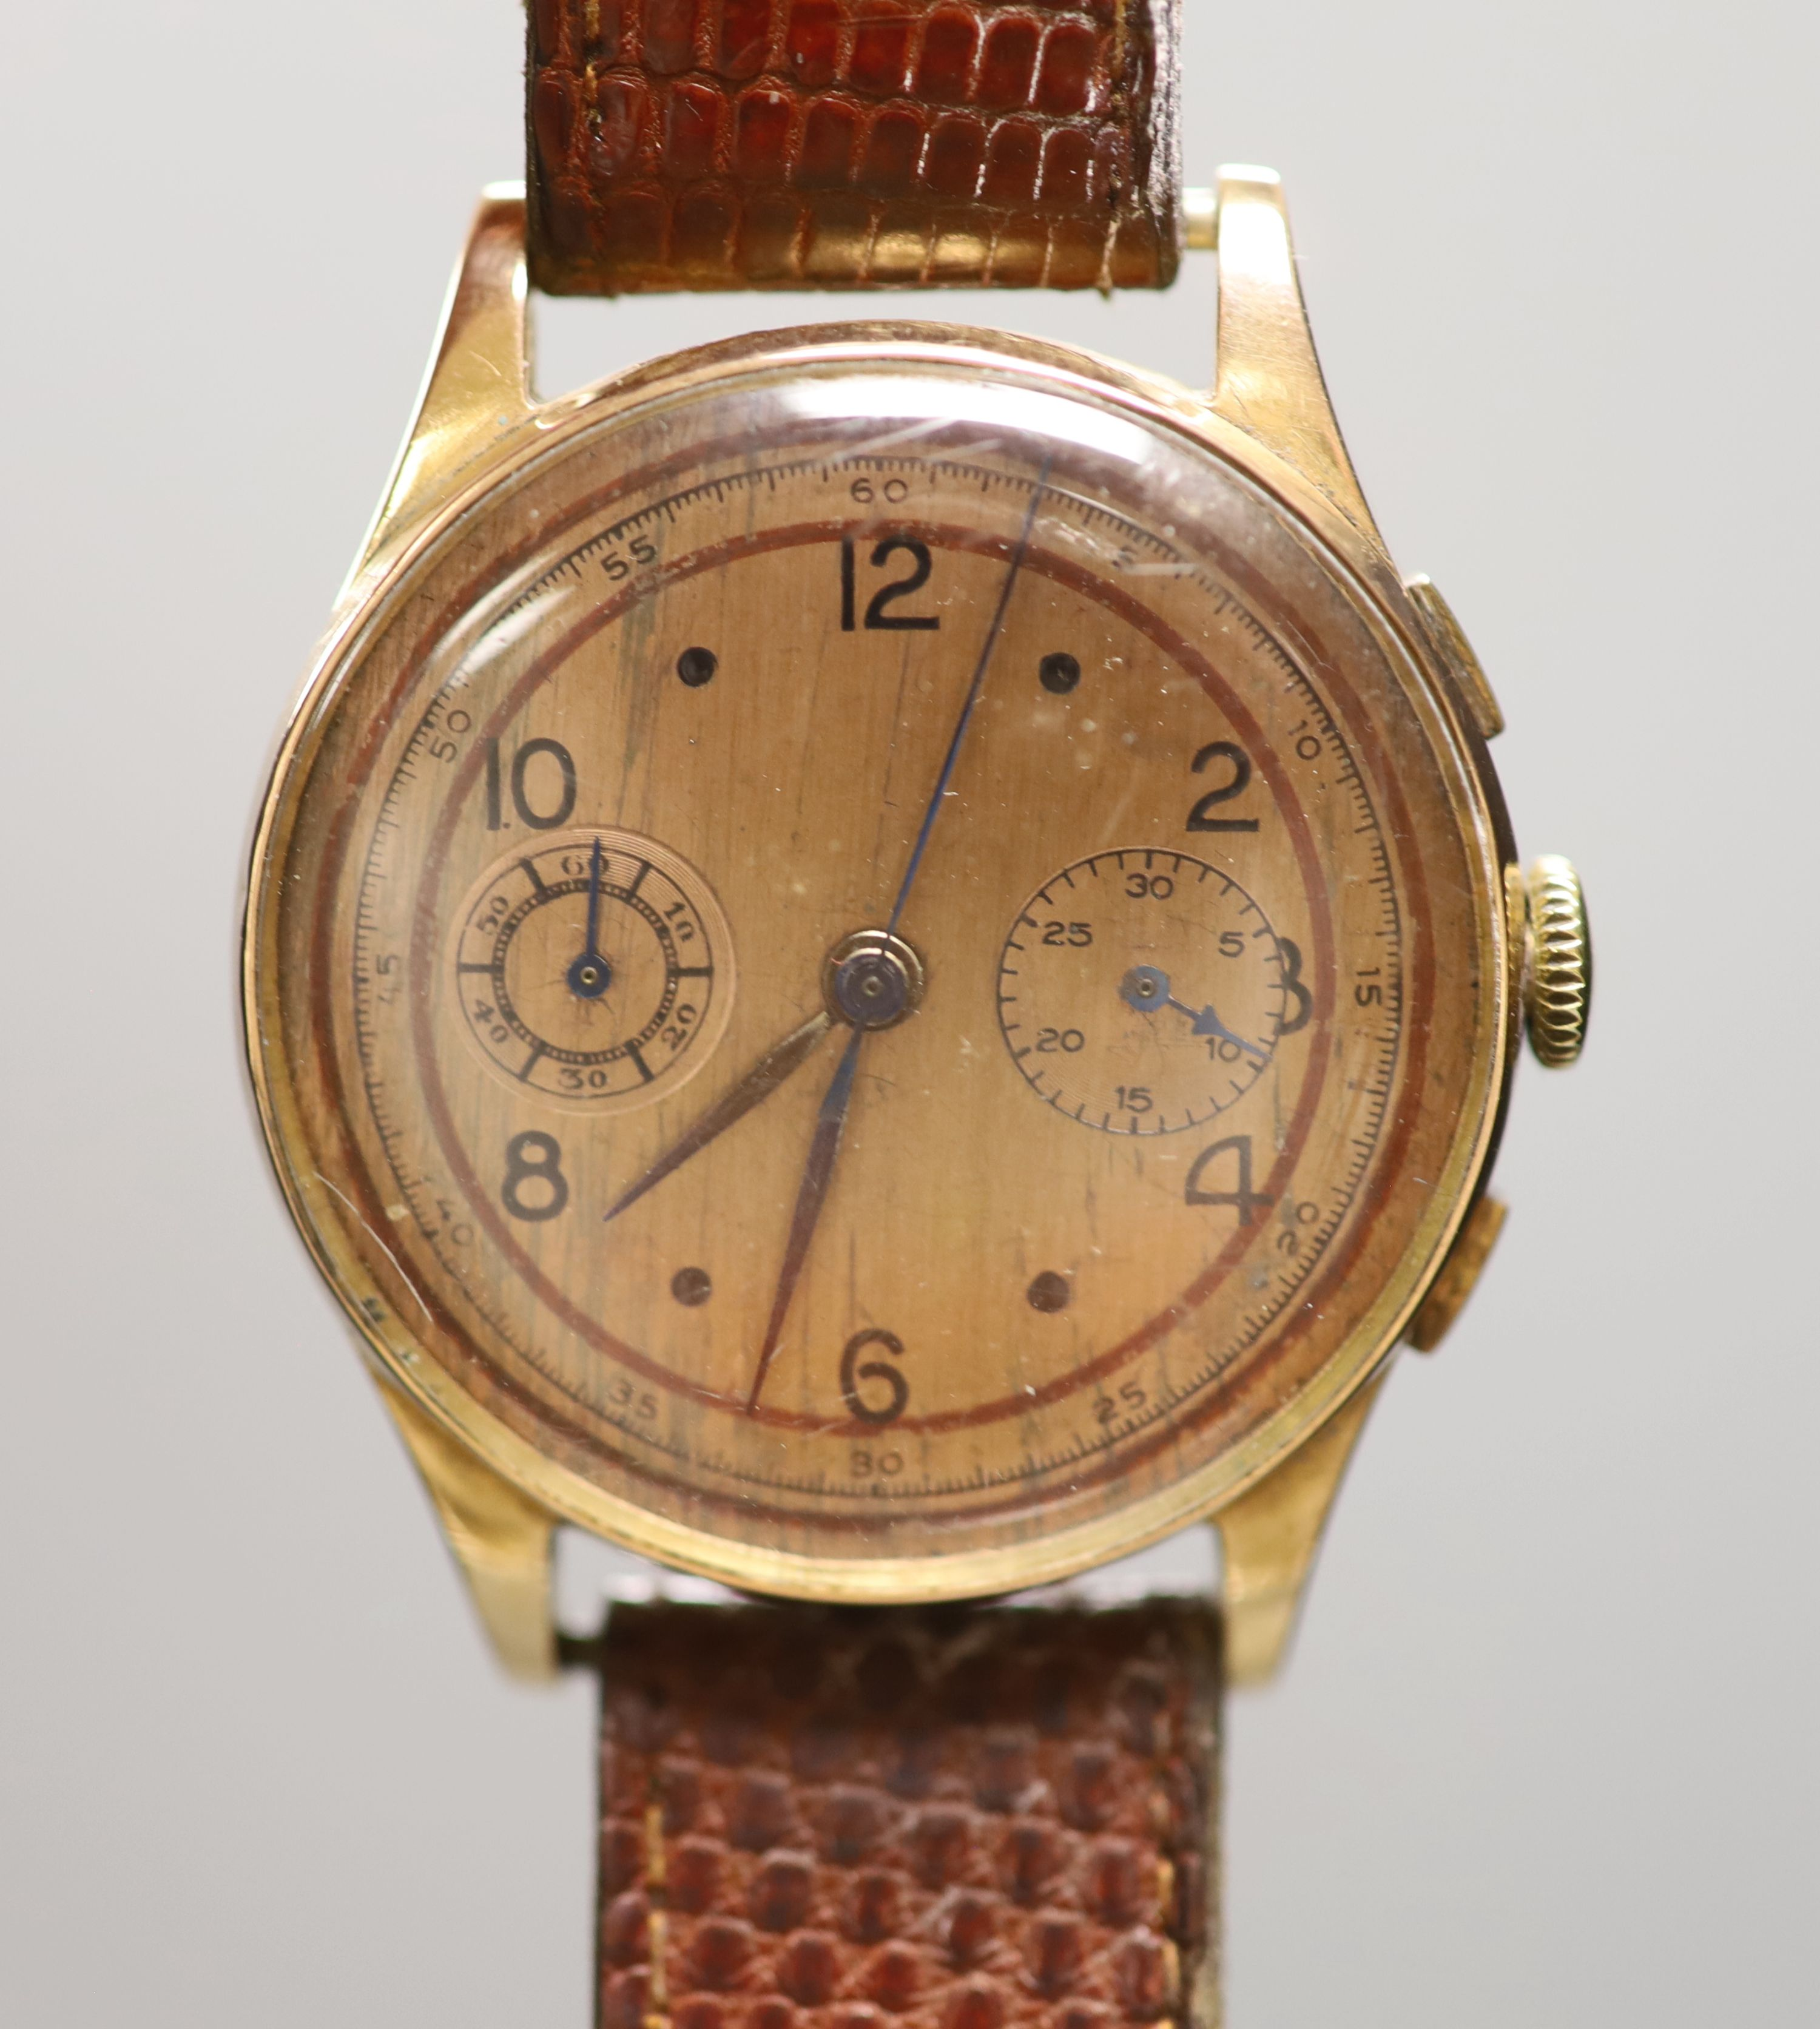 A Swiss 18k yellow metal chronograph manual wind wrist watch, on associated leather strap, with a